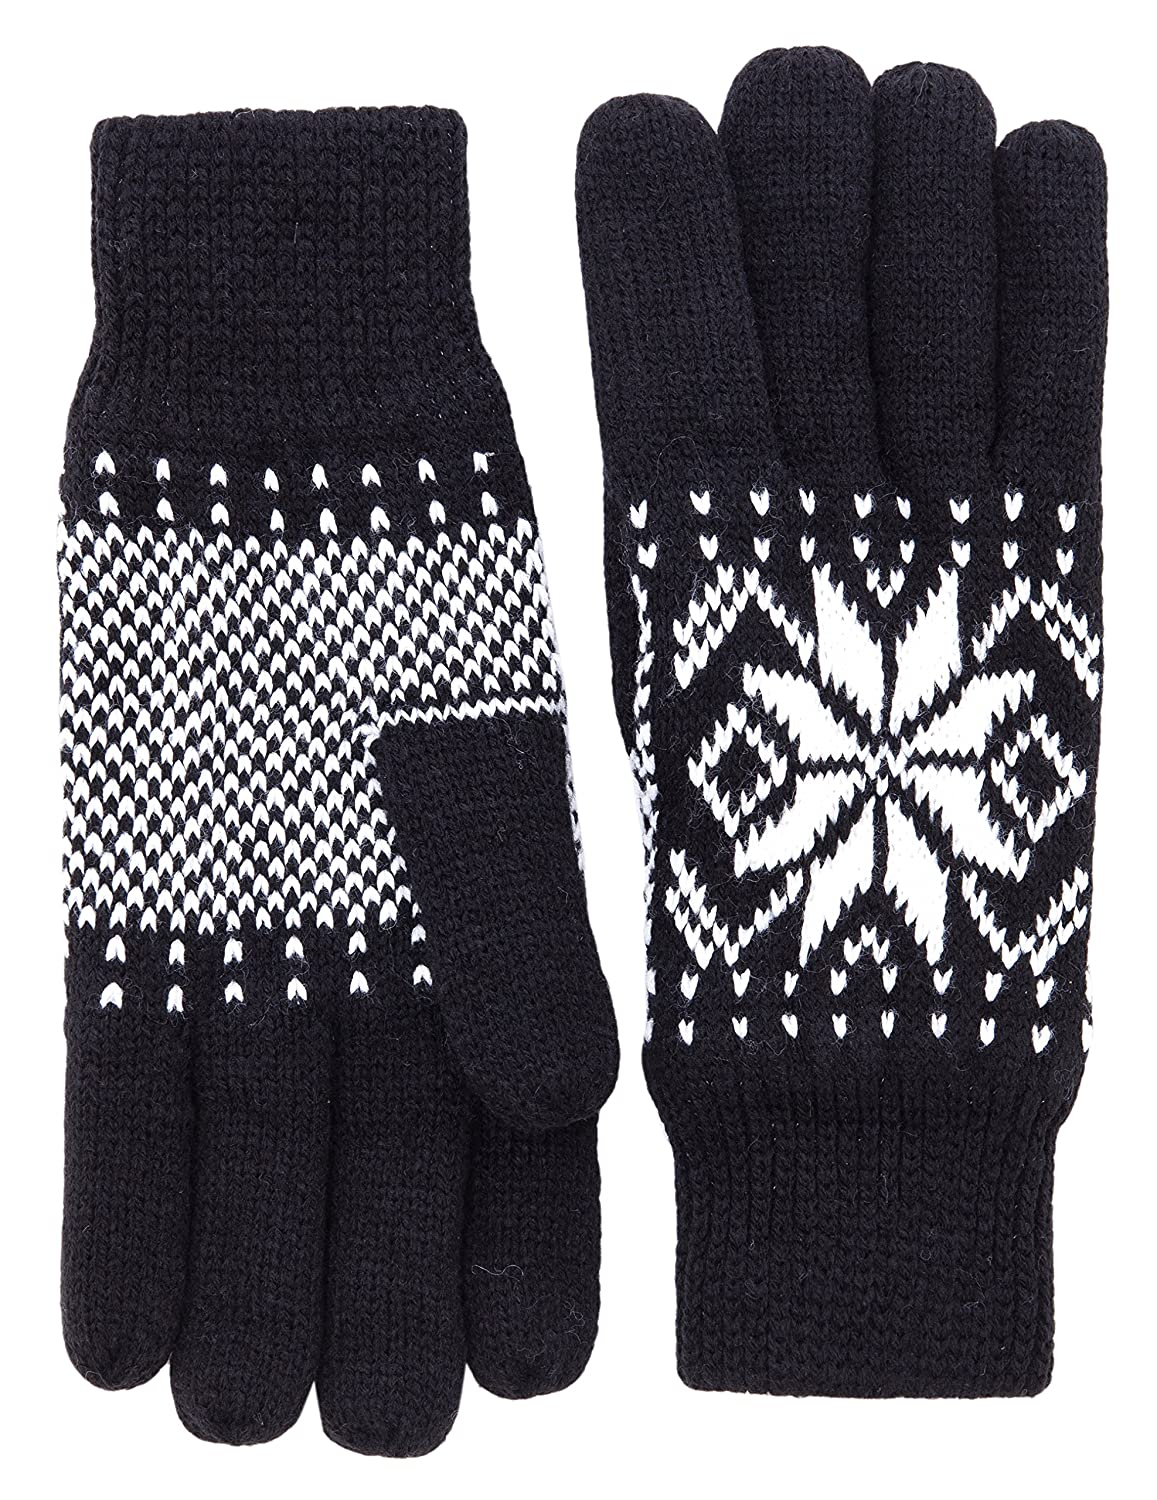 Wantdo Women's Warm 3M Thinsulate Fleece Lining Knit Gloves Thick Snowflake Pattern Winter Mittens One Size WDHW545